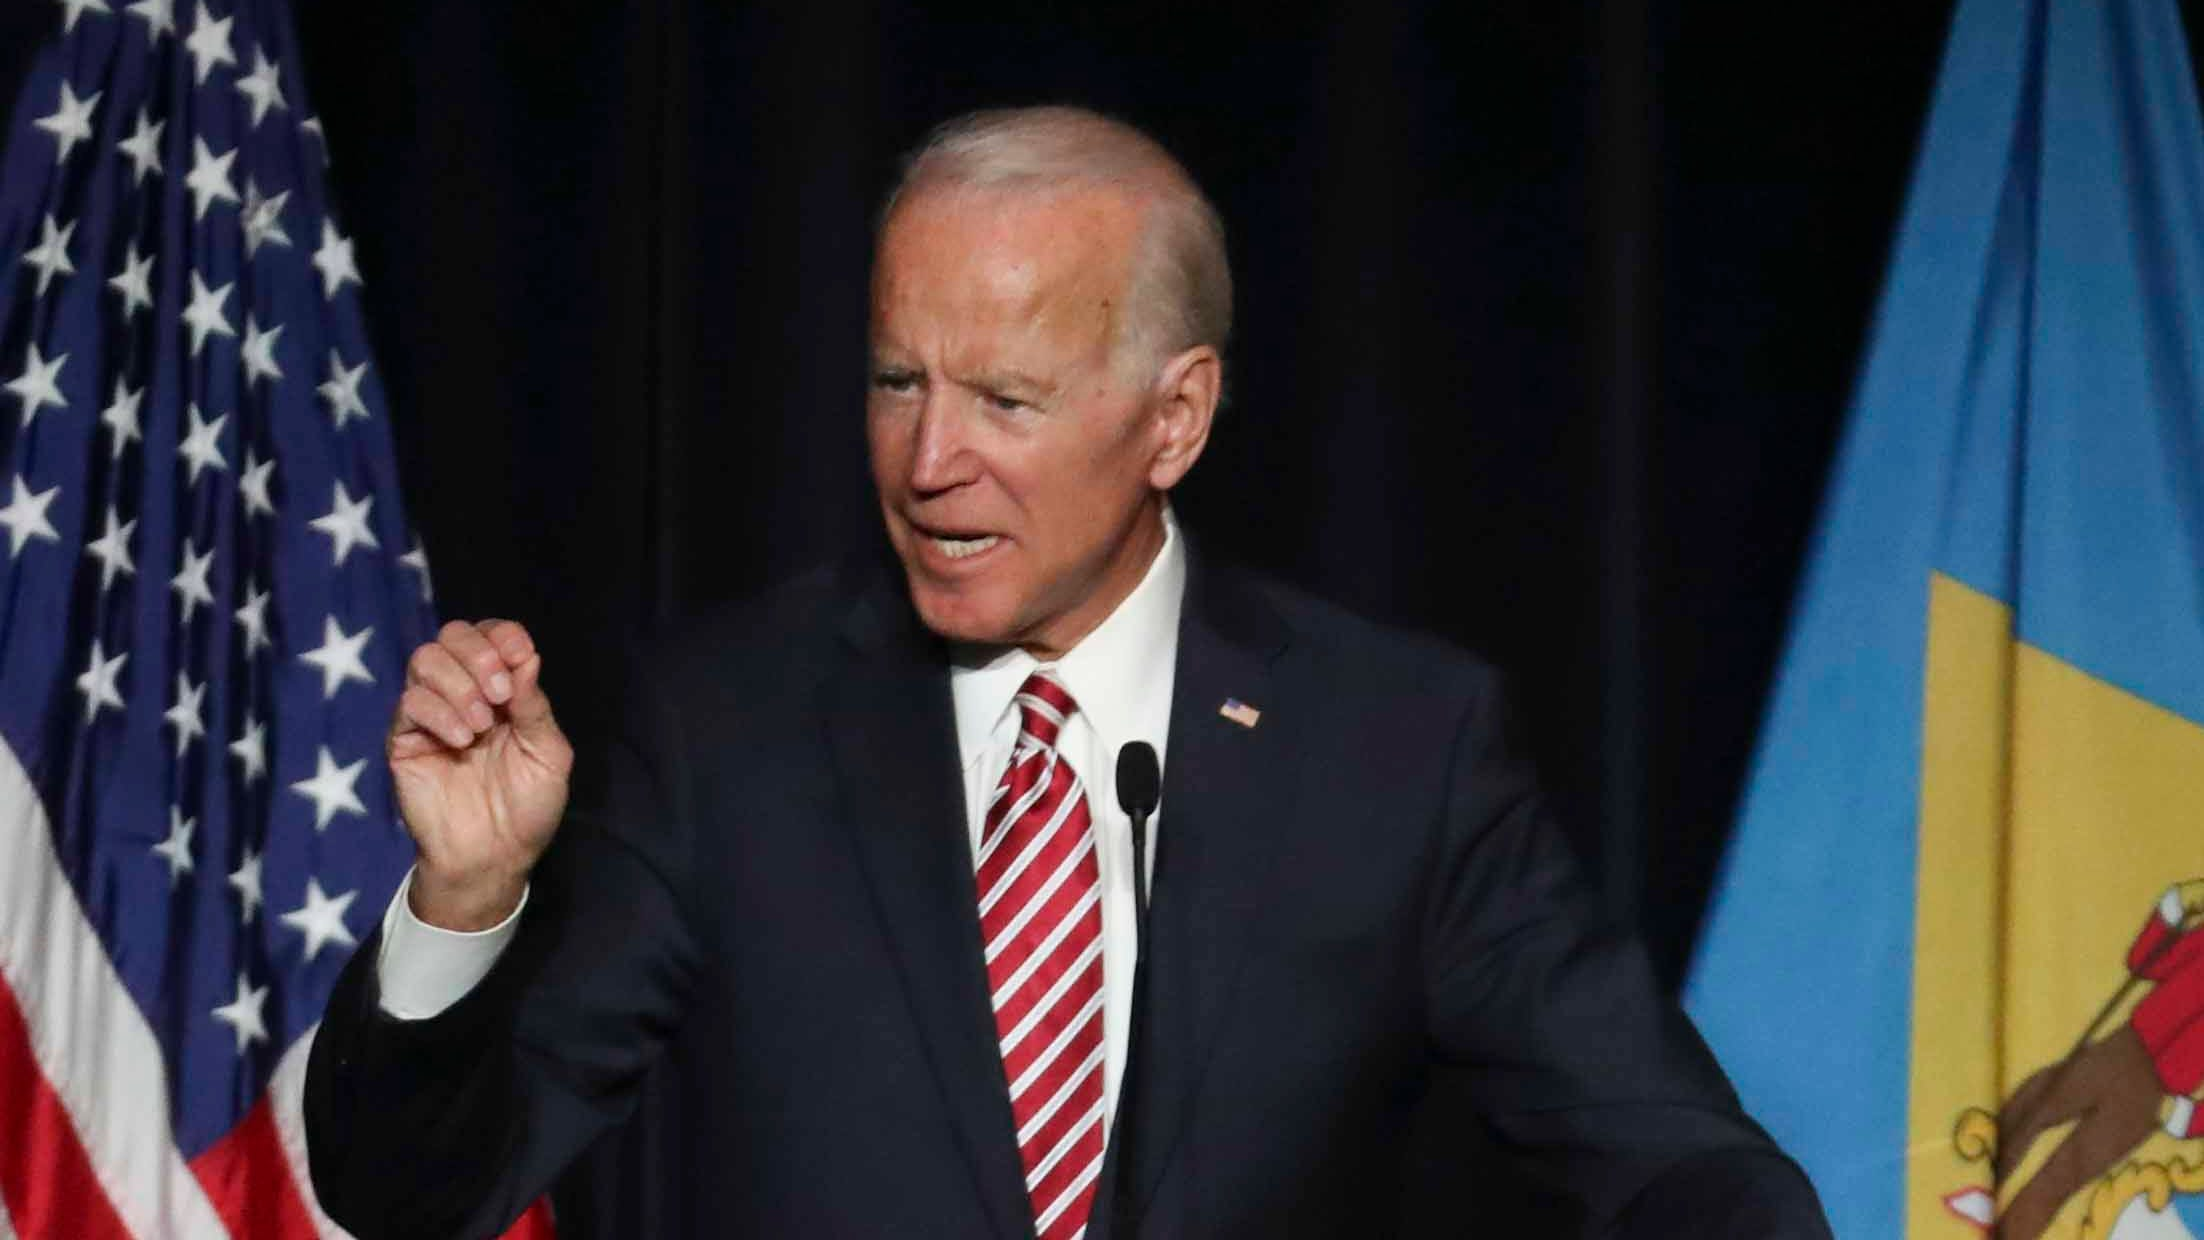 The 5 ways Joe Biden and his squad are hinting at a 2020 presidential run